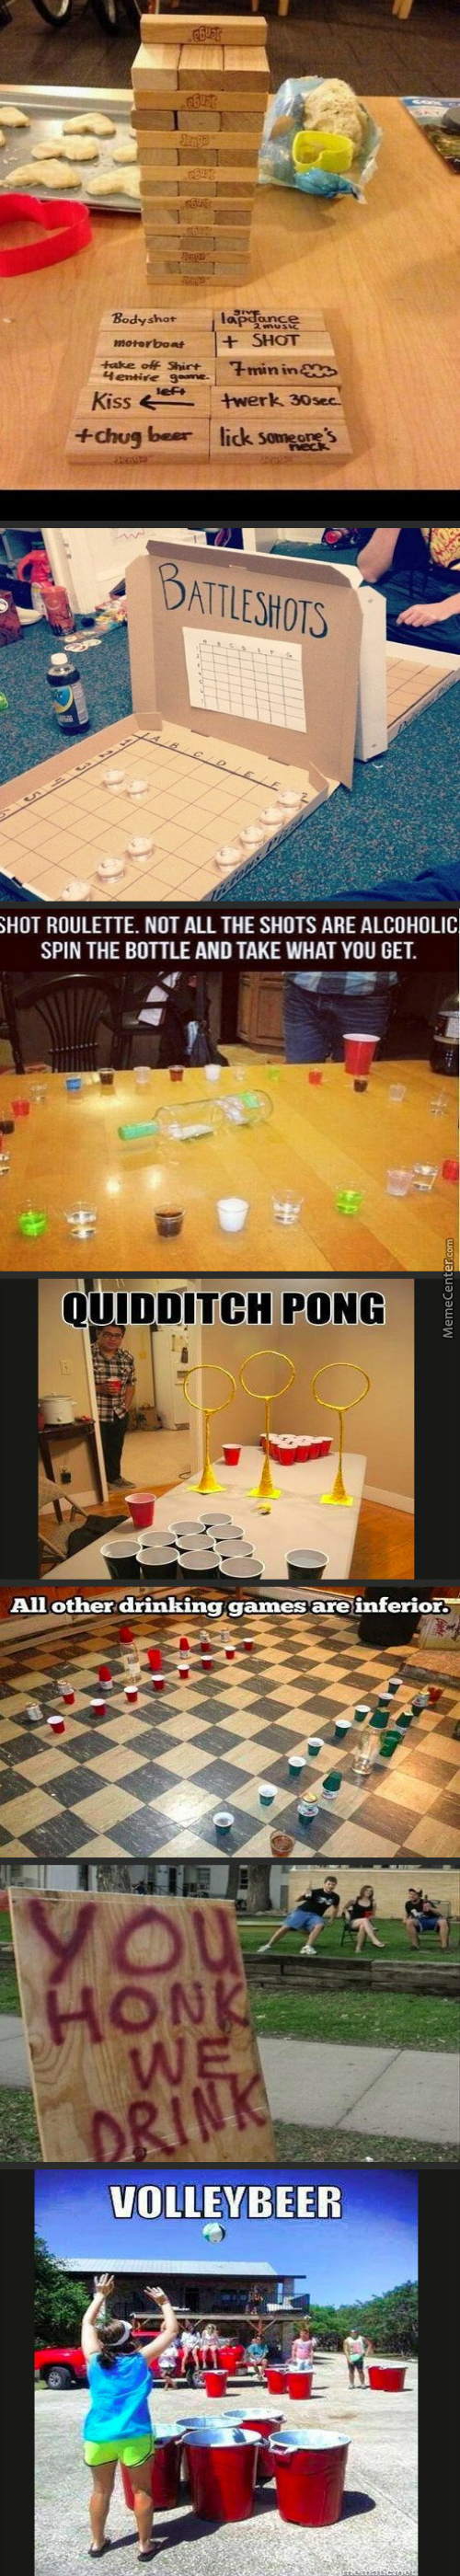 The New Kind Of Drinking Games